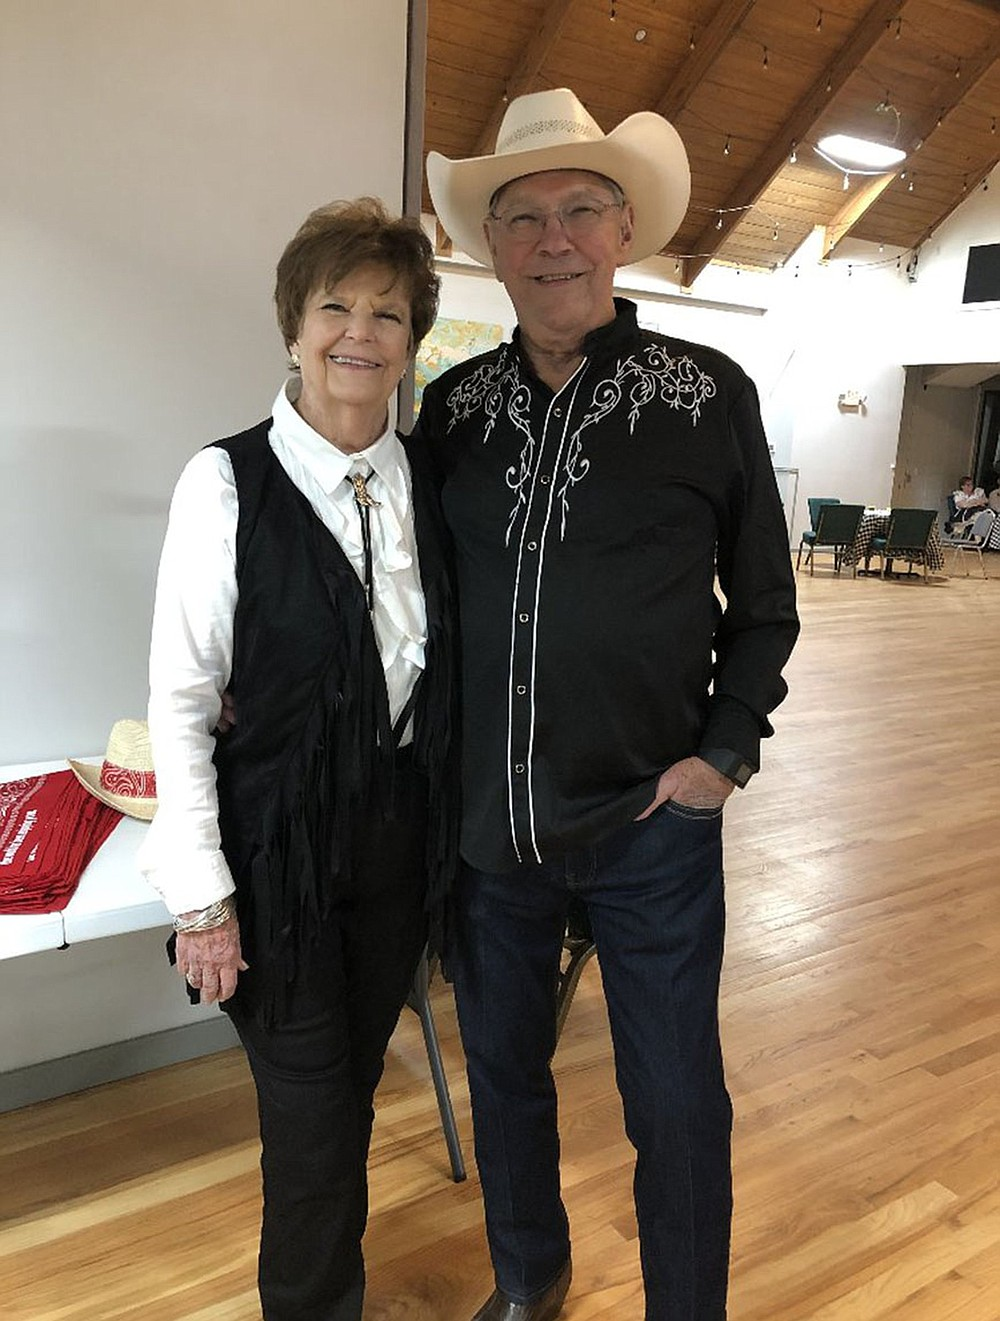 """Cissy and Bob Skarda have enjoyed each other's company throughout their 58-year marriage. They celebrated Cissy's birthday a few years back with a hoedown. Bob knew Cissy was the one for him right after they met in 1962. """"She was so comfortable. We felt very comfortable together,"""" he says. (Special to the Democrat-Gazette)"""